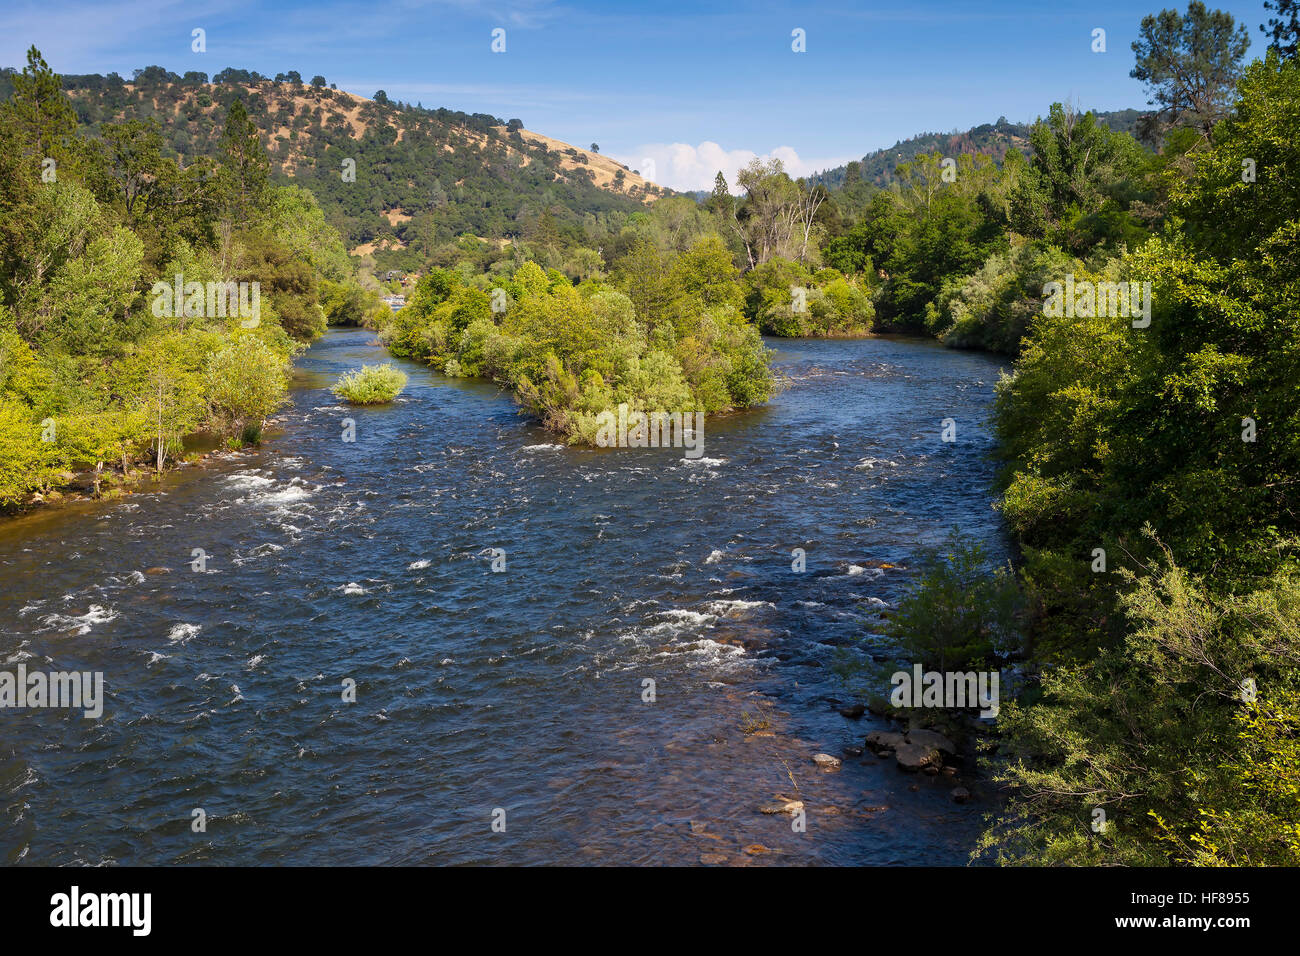 South Fork of the American River near Marshall Gold Discovery State Historic Park. A popular place to pan for gold. - Stock Image